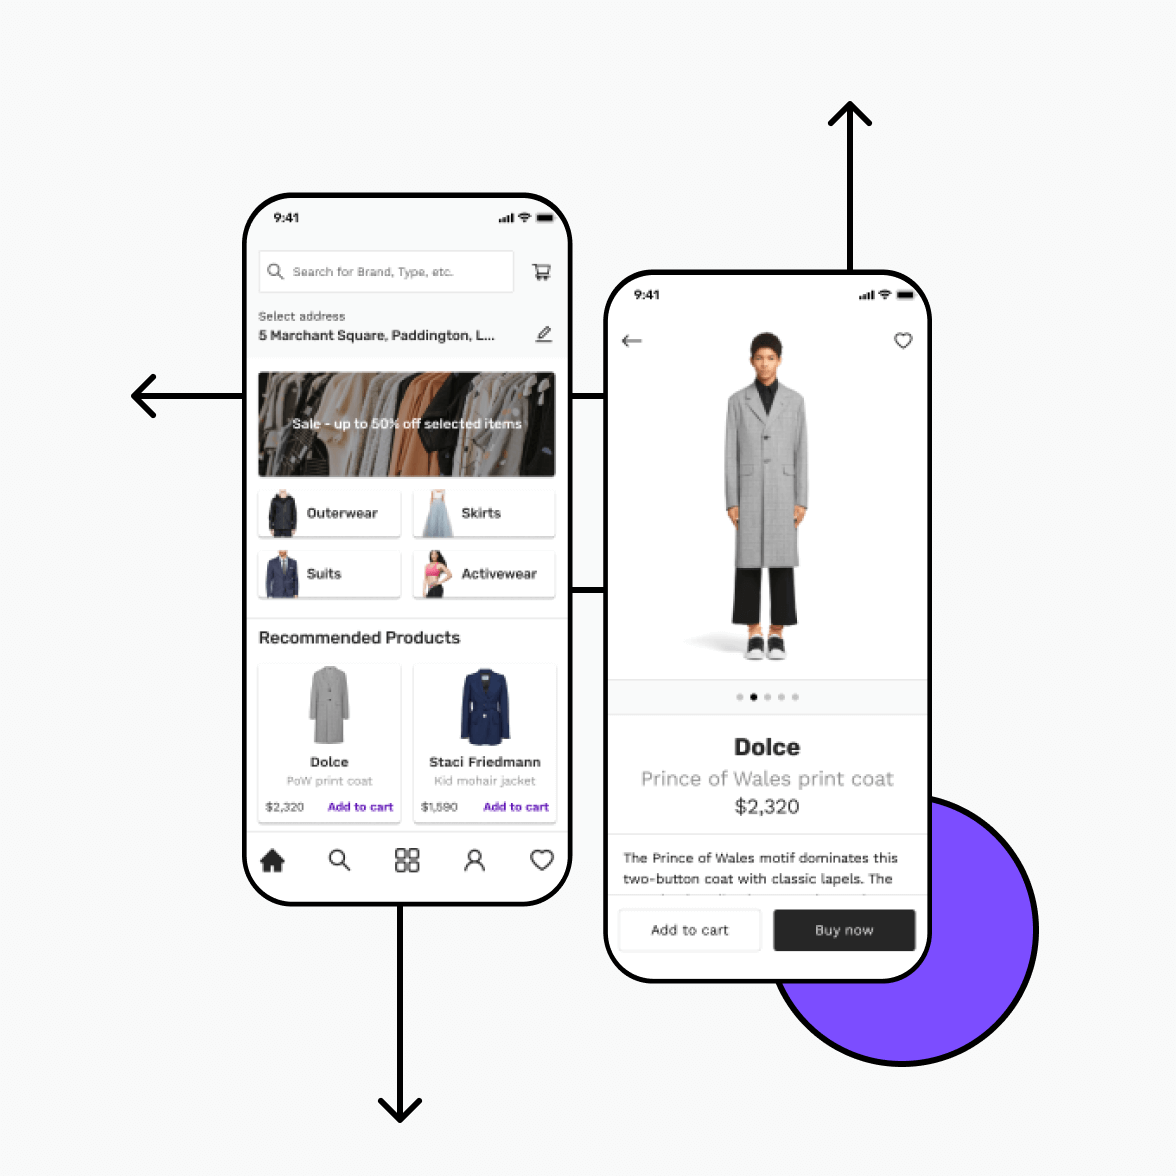 Retail app screens with categories and product details